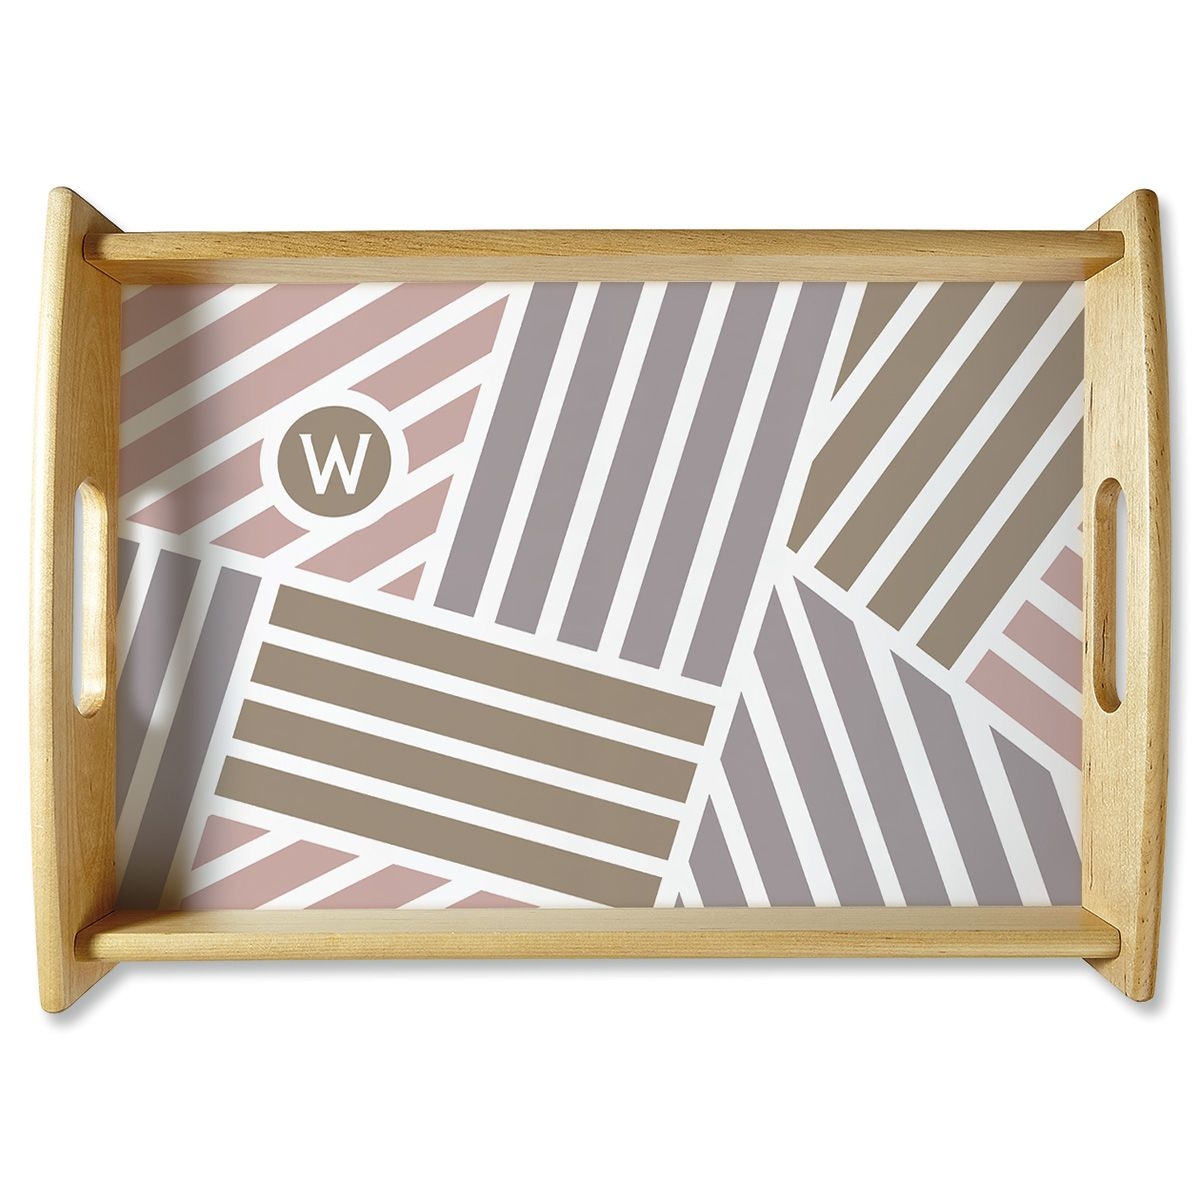 Initialed Stripe Natural Wood Serving Tray